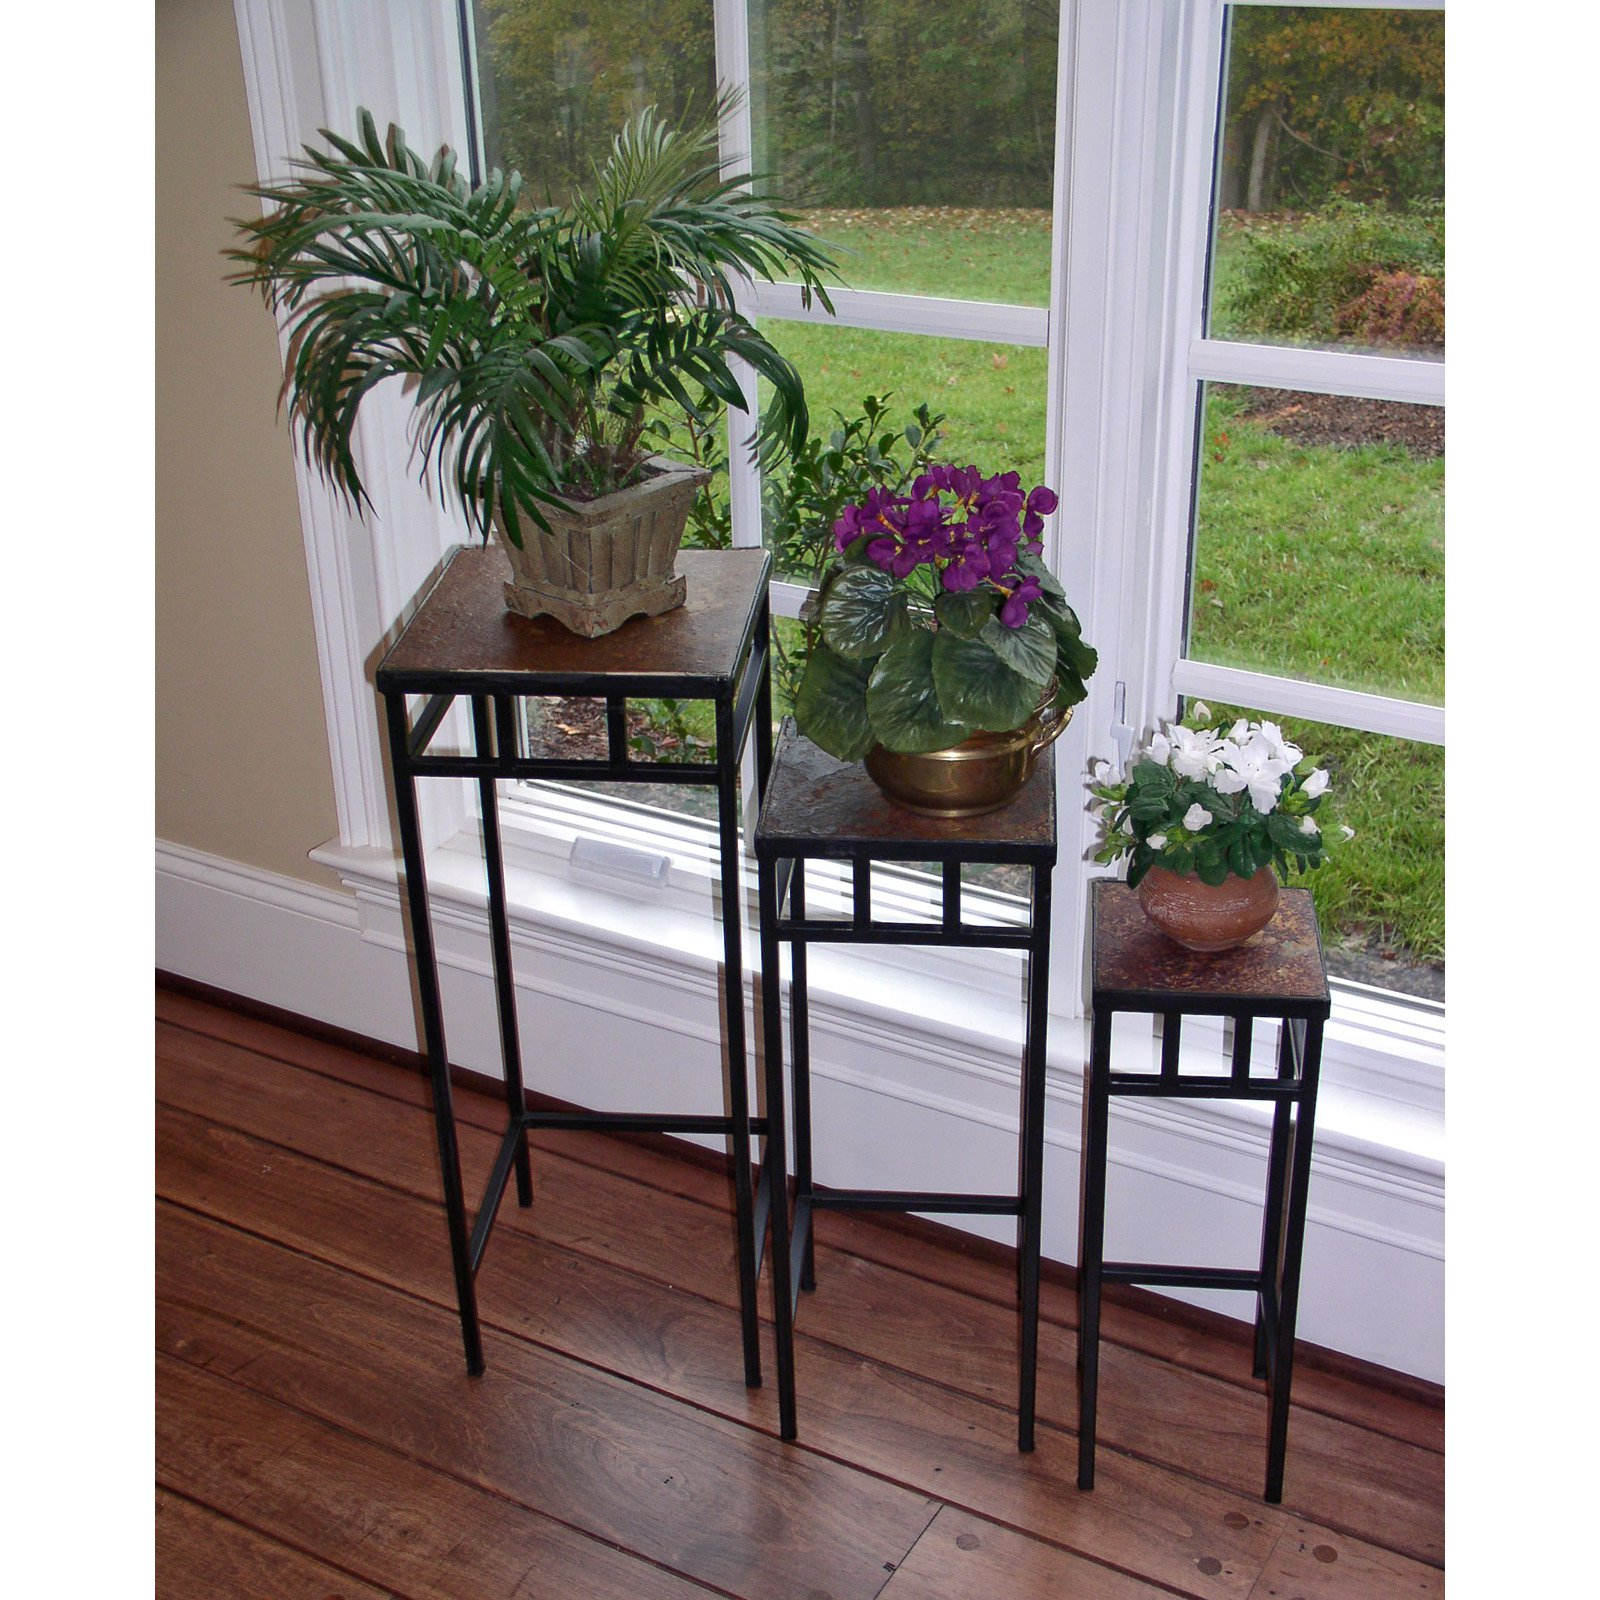 4D Concepts Slate Top Plant Stands Set of 3 by 4D Concepts